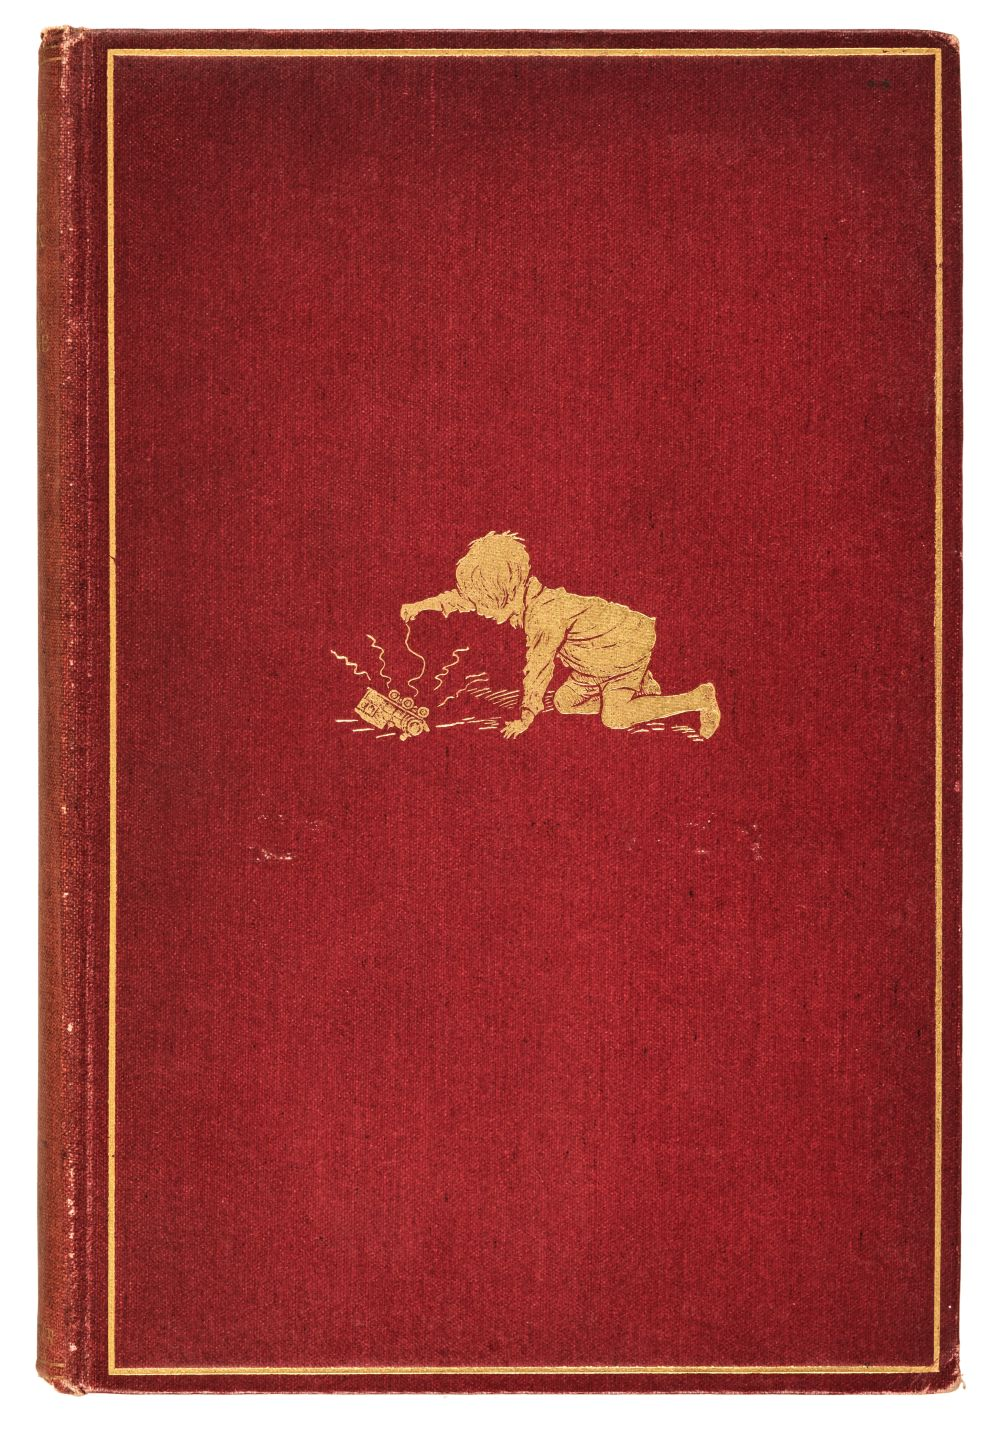 Milne (A.A.). Now We Are Six, 1st edition, 1927